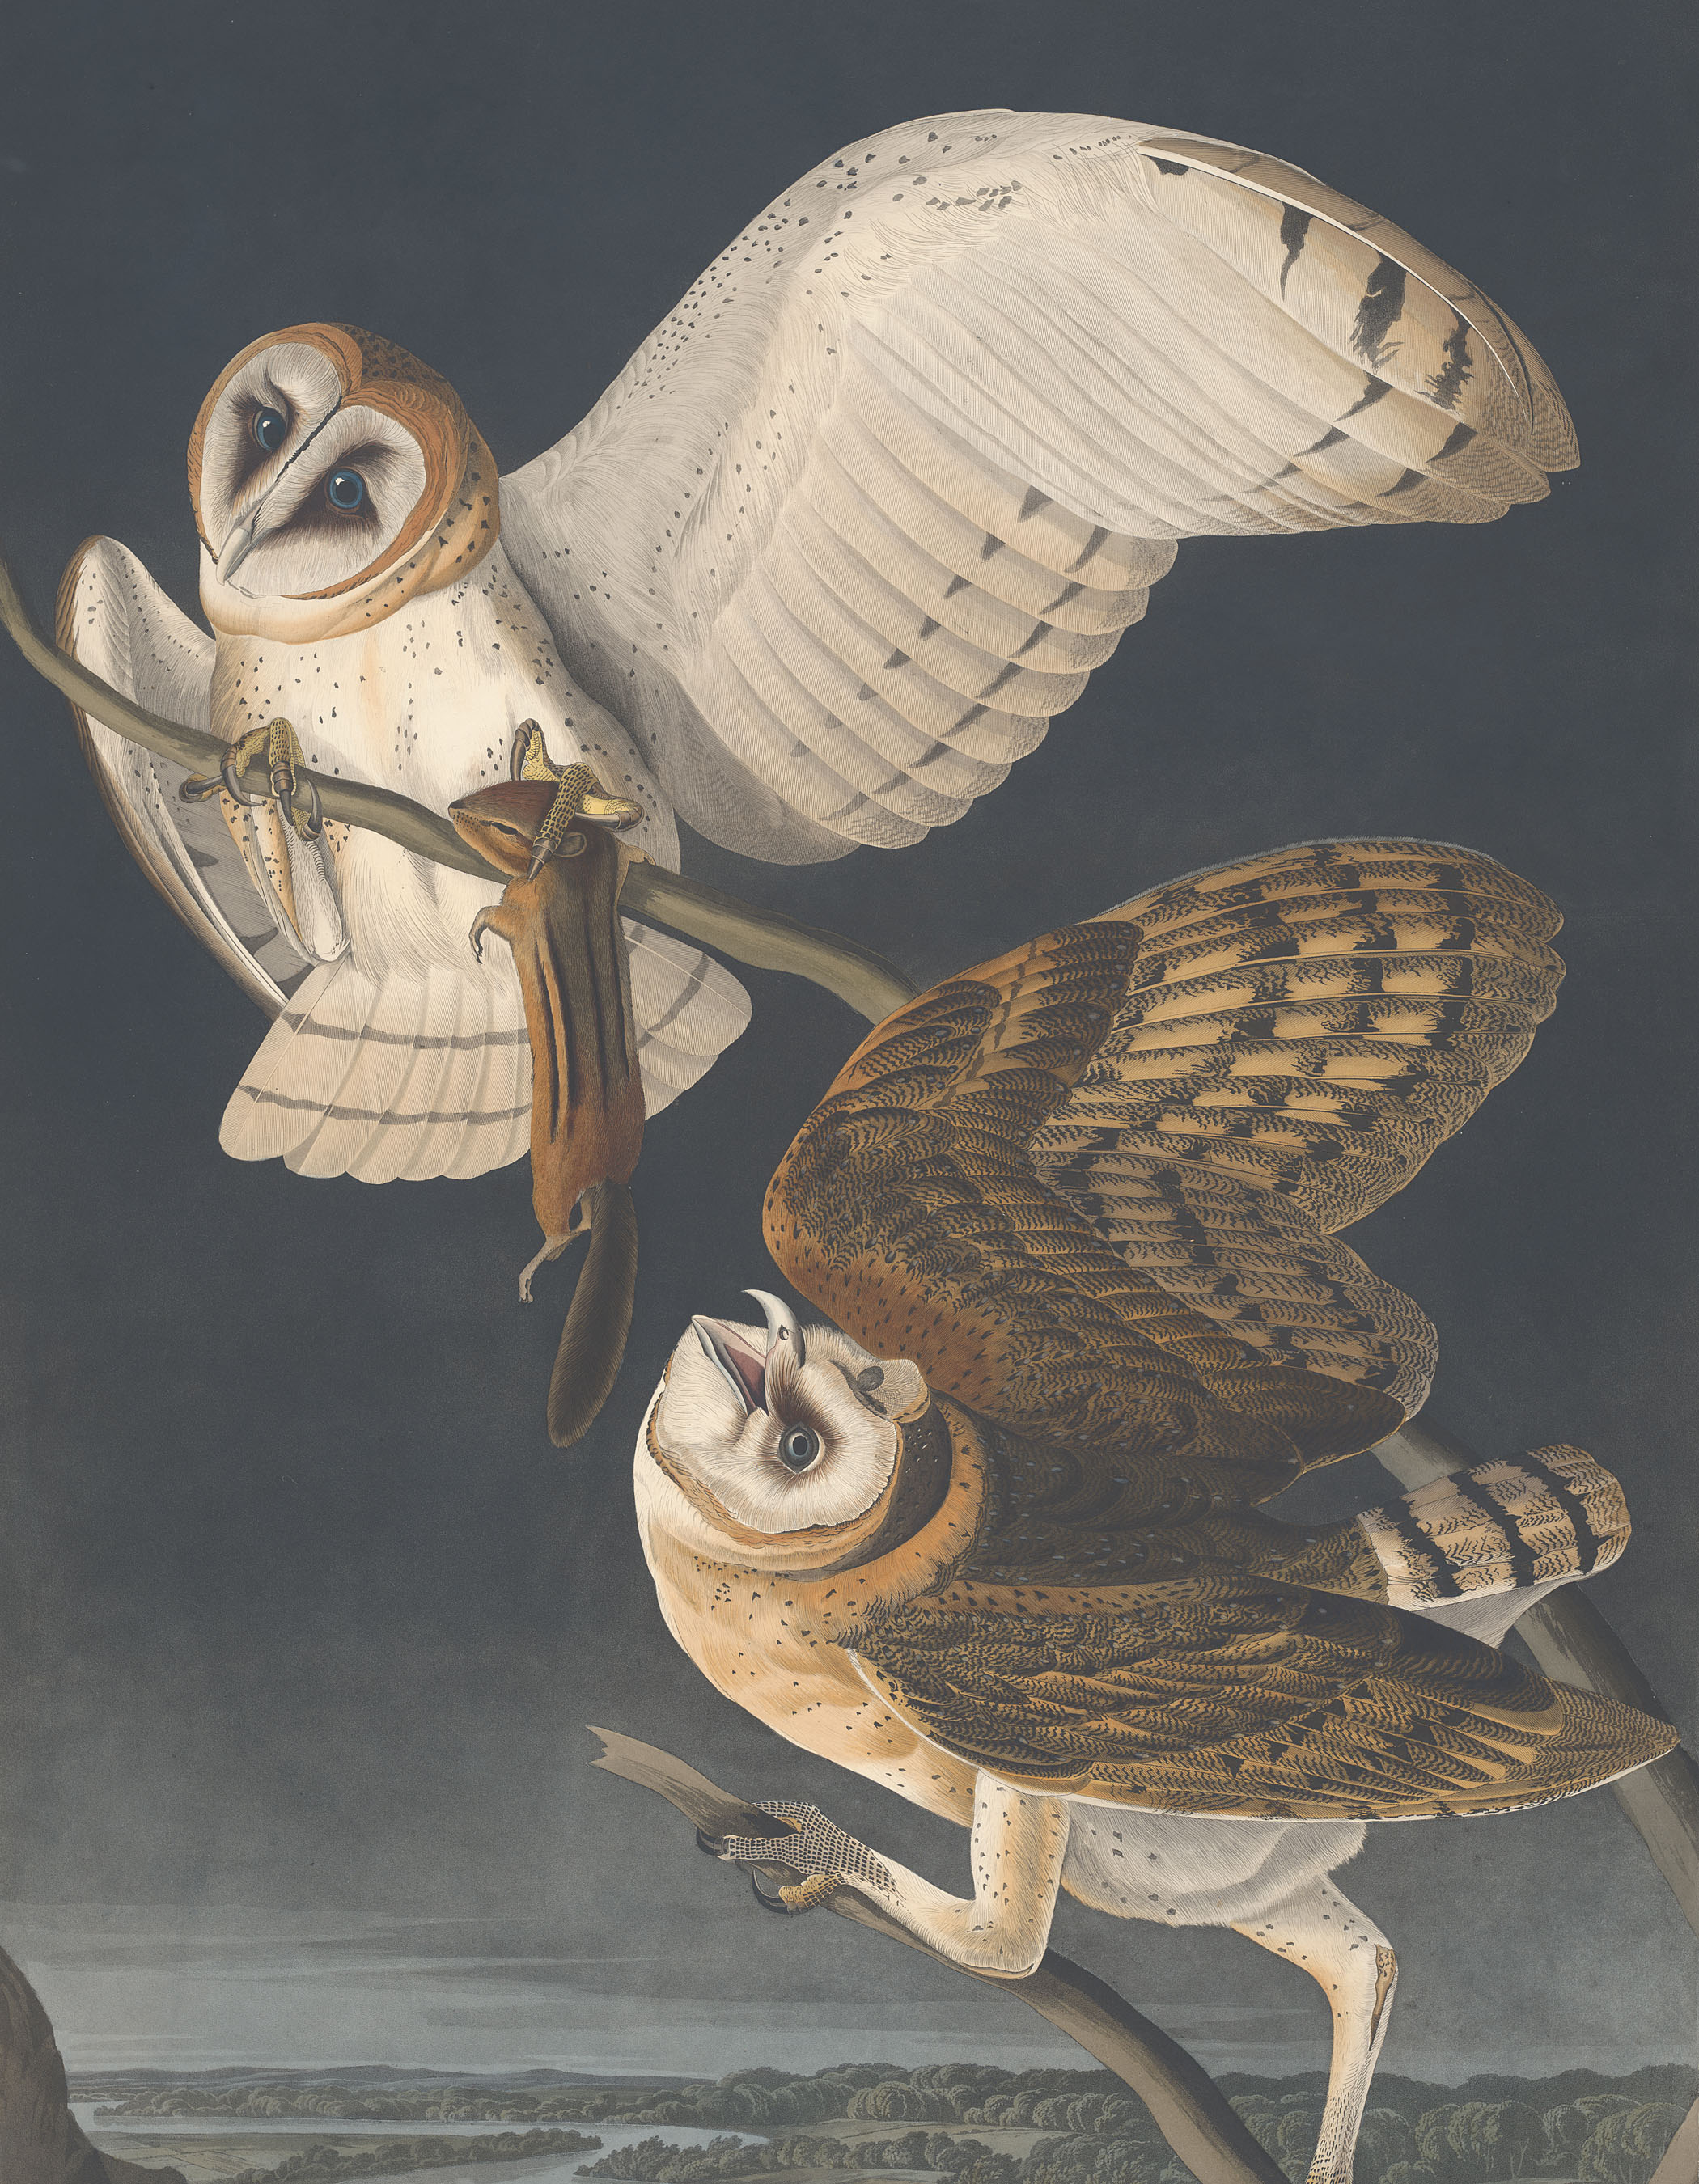 An image from Audobon's The Birds of America (1827-38)